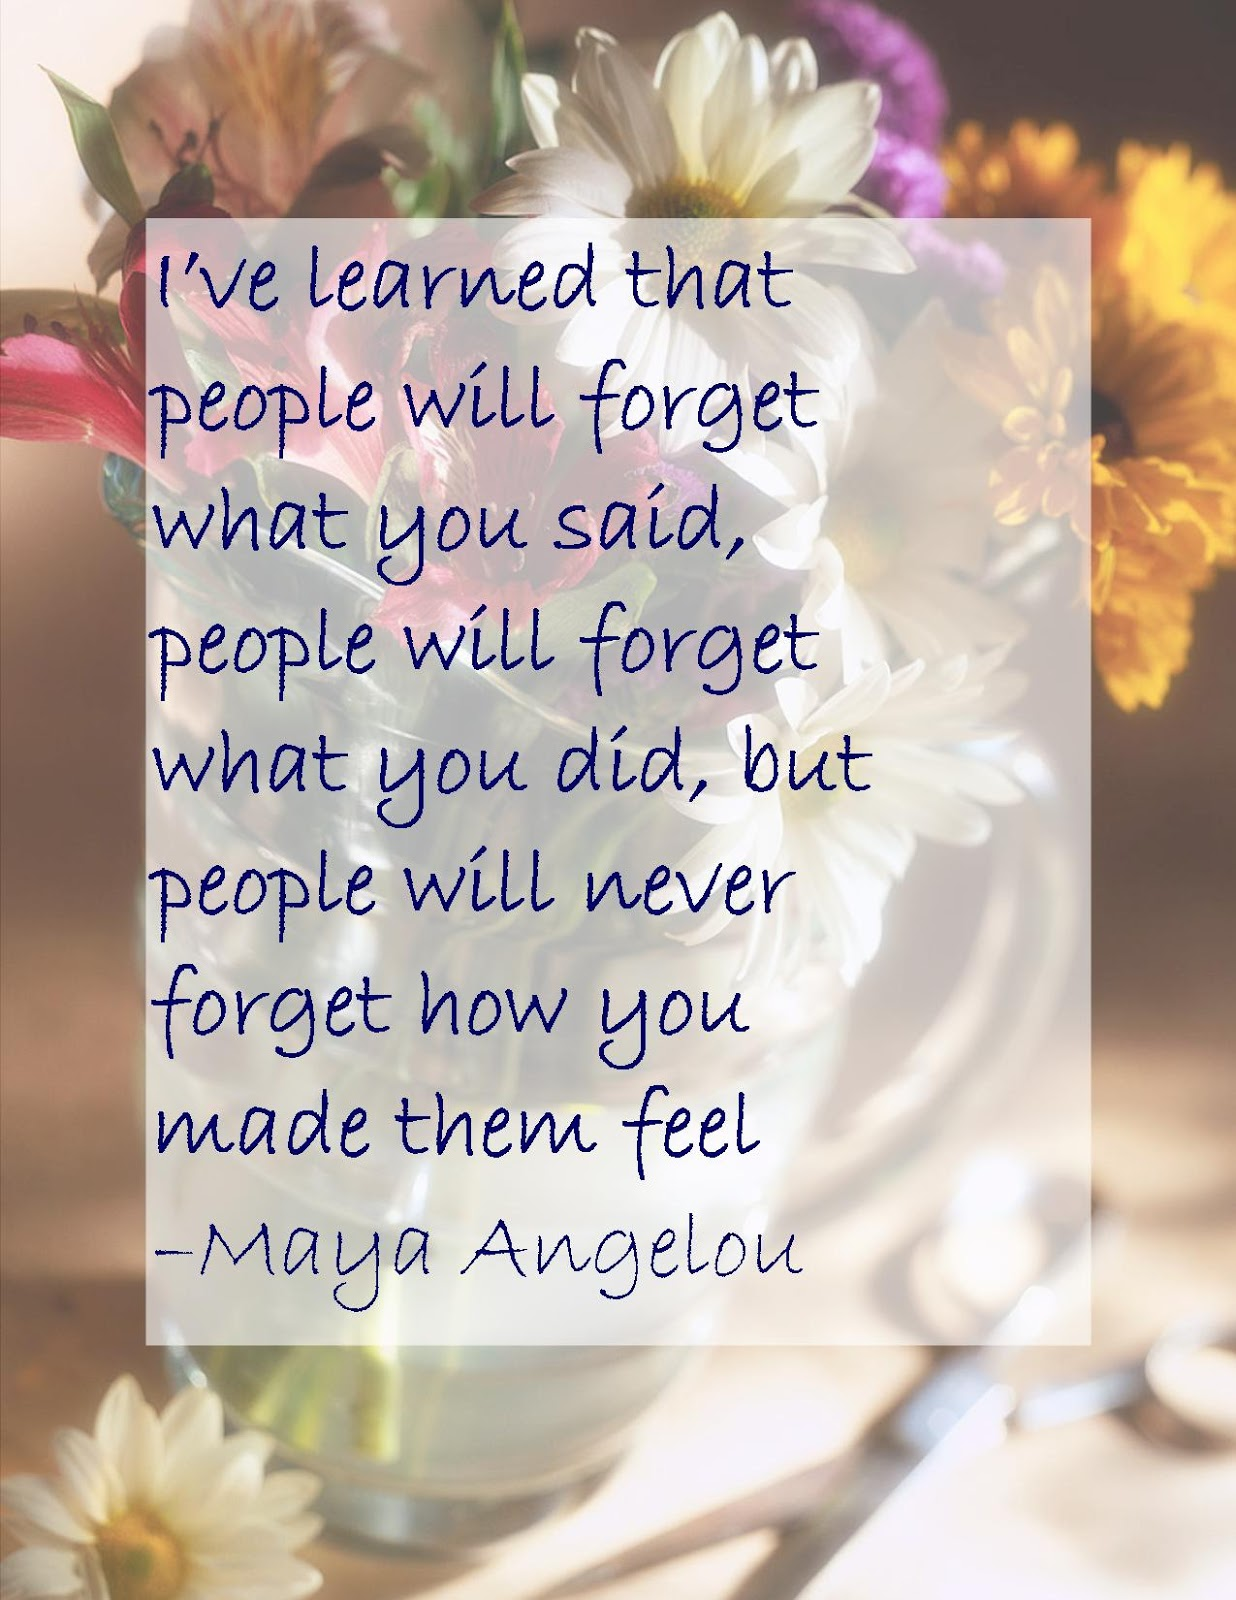 Maya Angelou Quotes About Friendship Friendship Quotes Maya Angelou Friendship Quotes